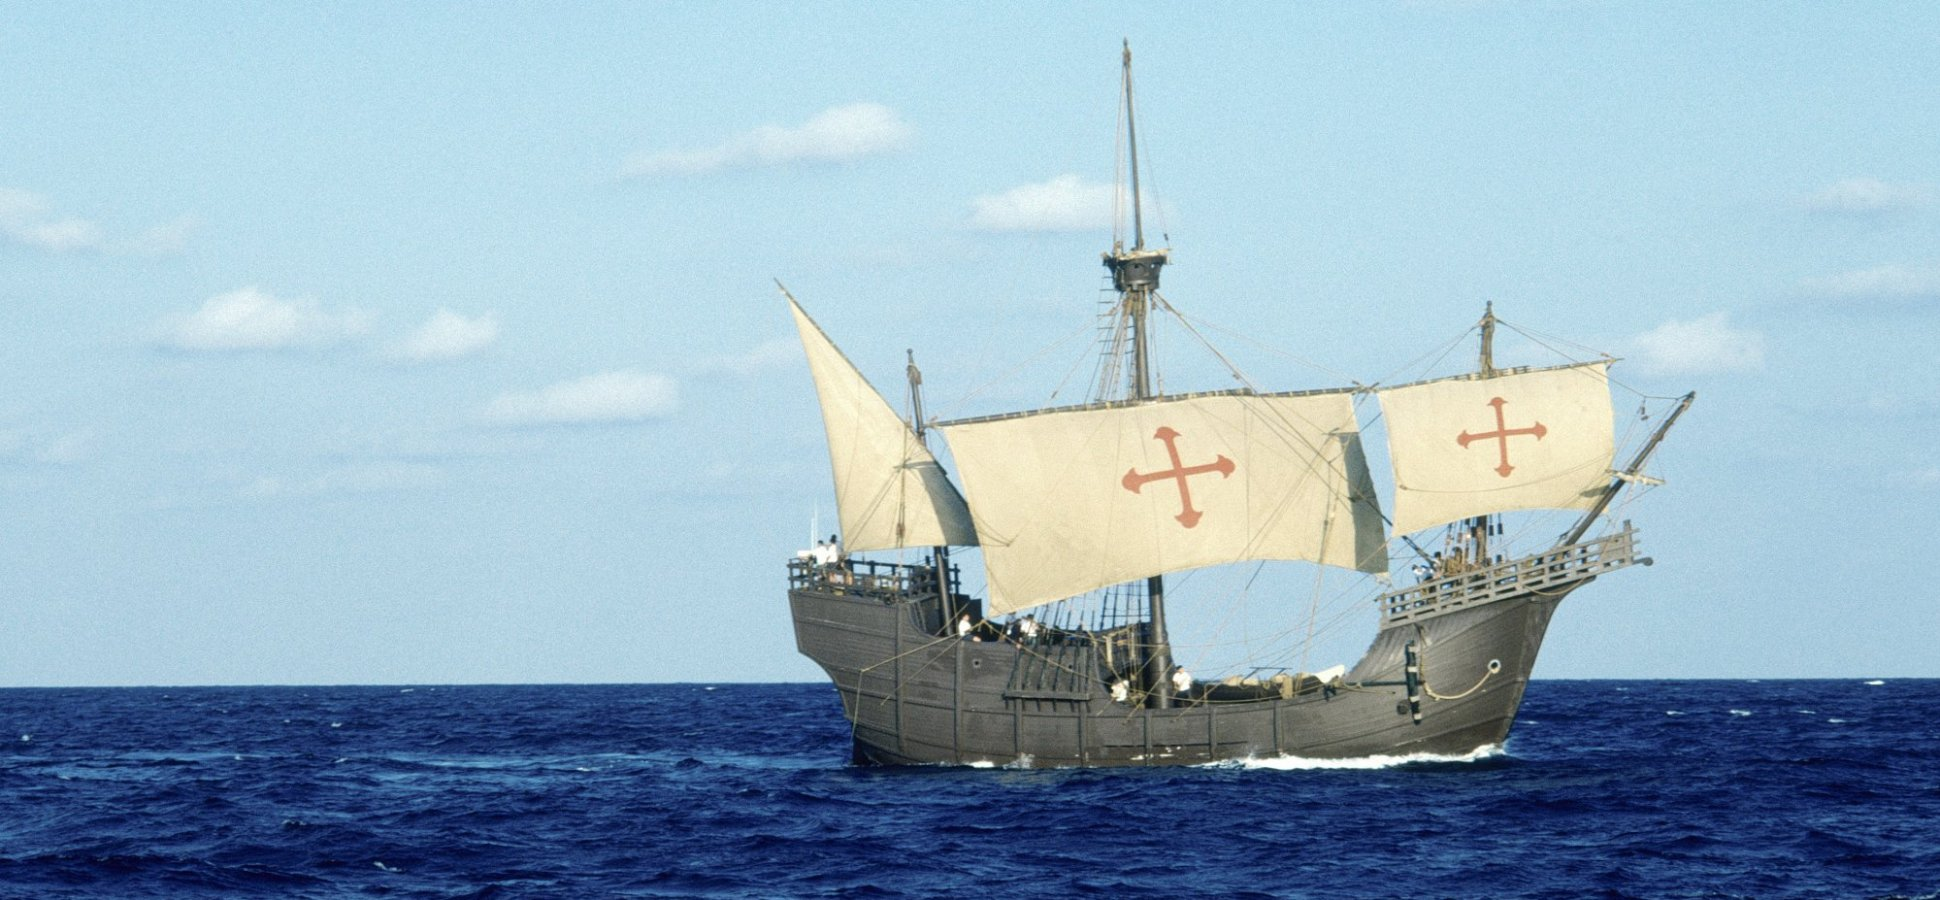 Facts to Contemplate on Columbus Day. Should This Holiday Exist?